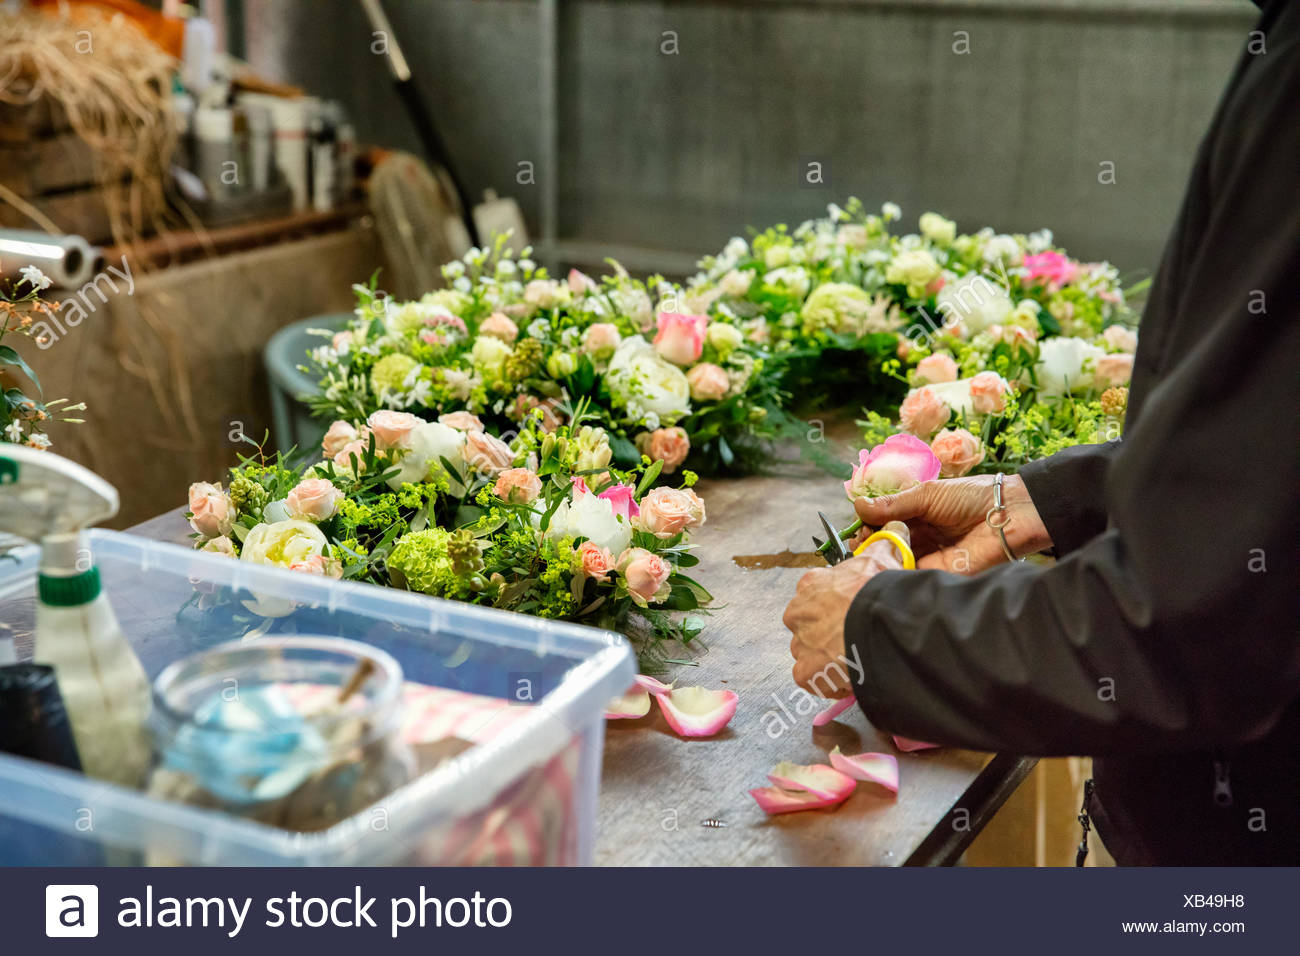 Commercial florist. A woman working on  a floral decoration  at a workbench. - Stock Image